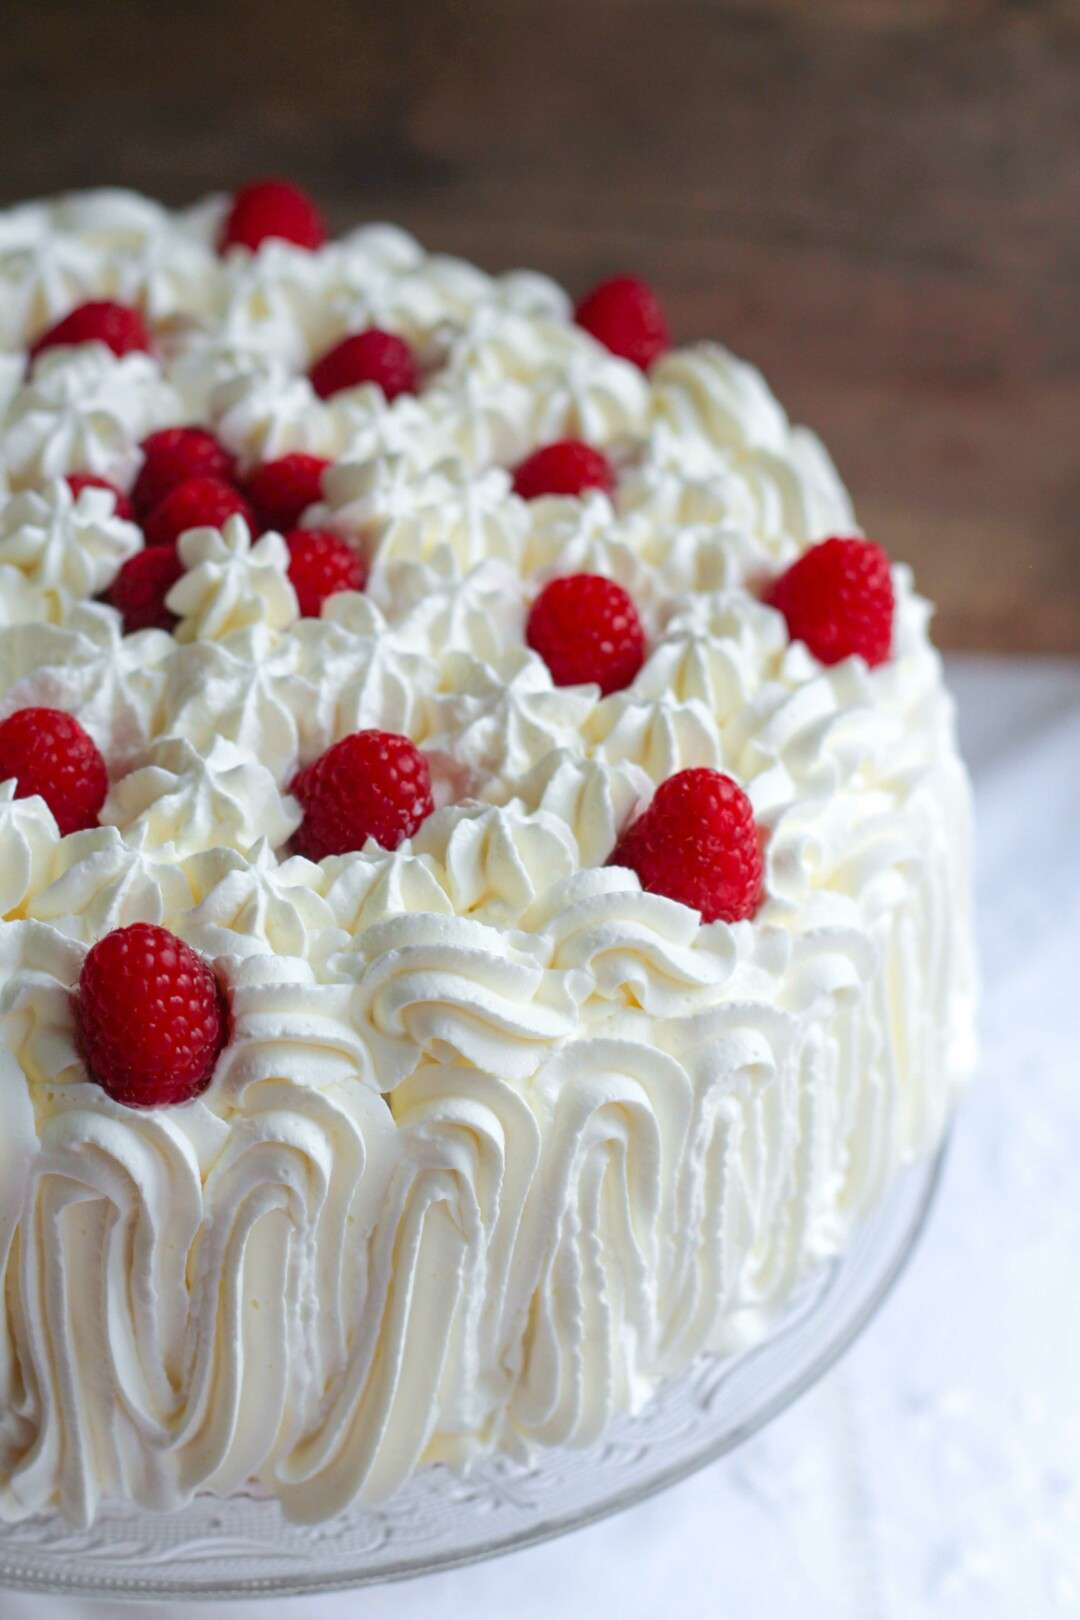 red fruits decorated cake